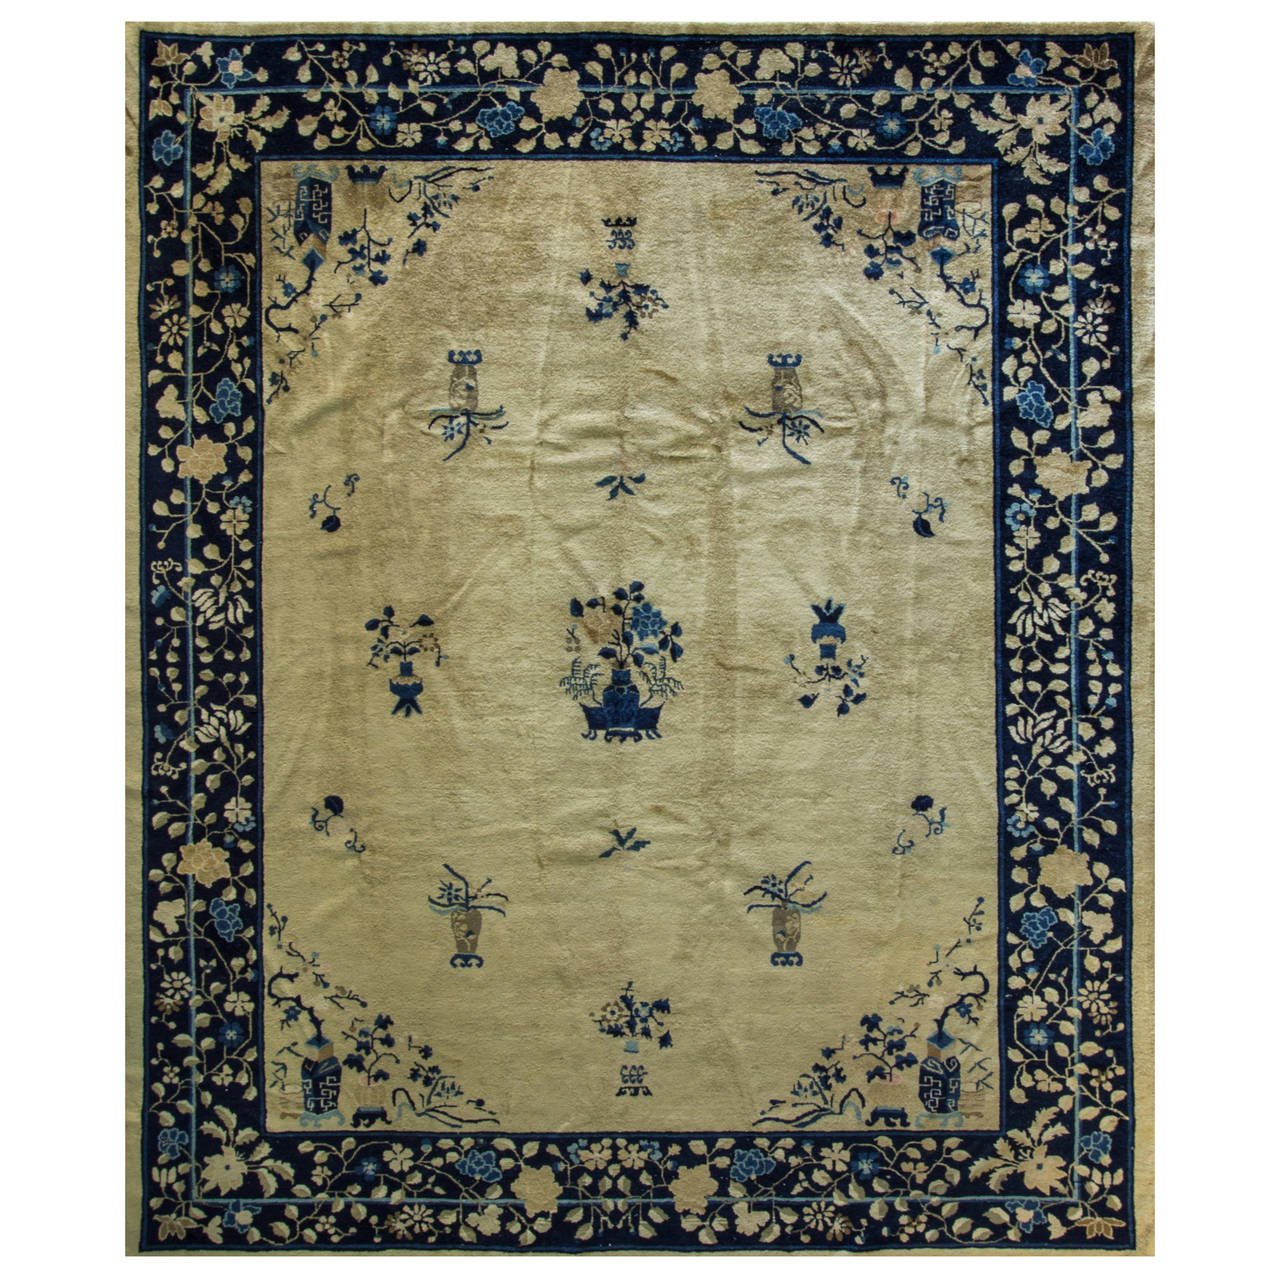 Antique Chinese Rug: Antique Chinese Peking Carpet For Sale At 1stdibs